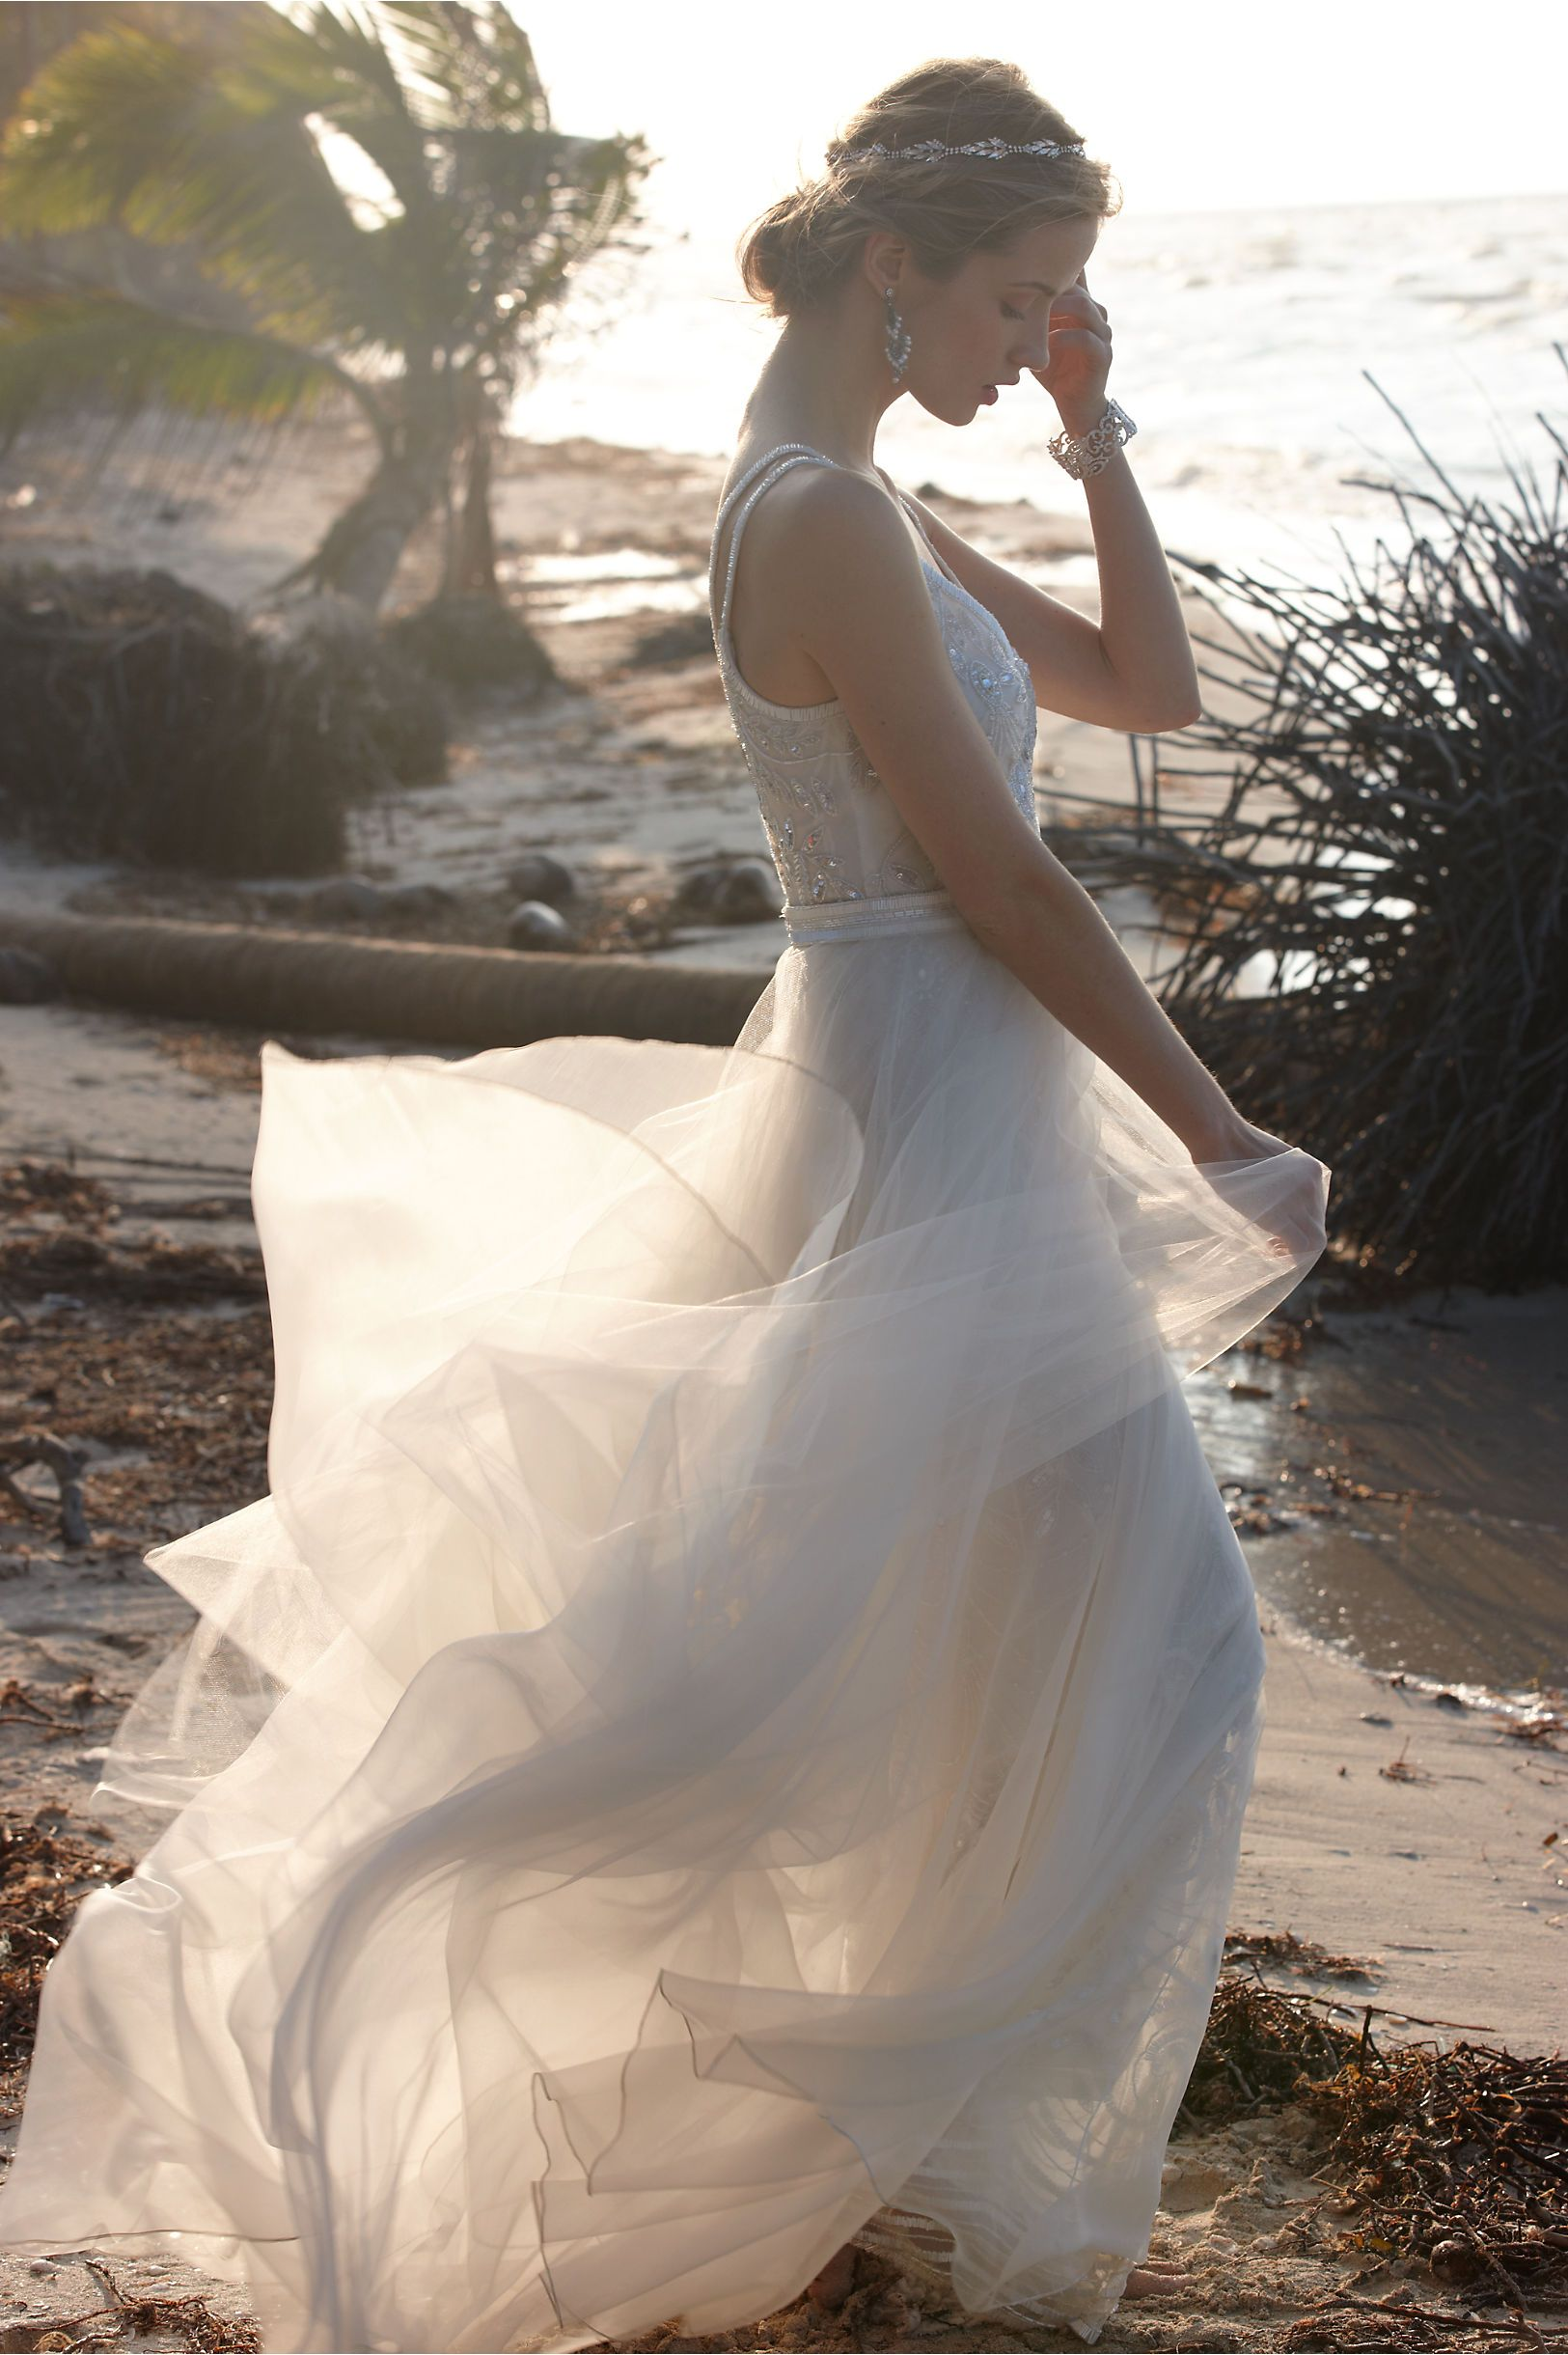 Elsa Tulle Skirt in Bride Wedding Dresses at BHLDN 498€ und heißts ELSA :D